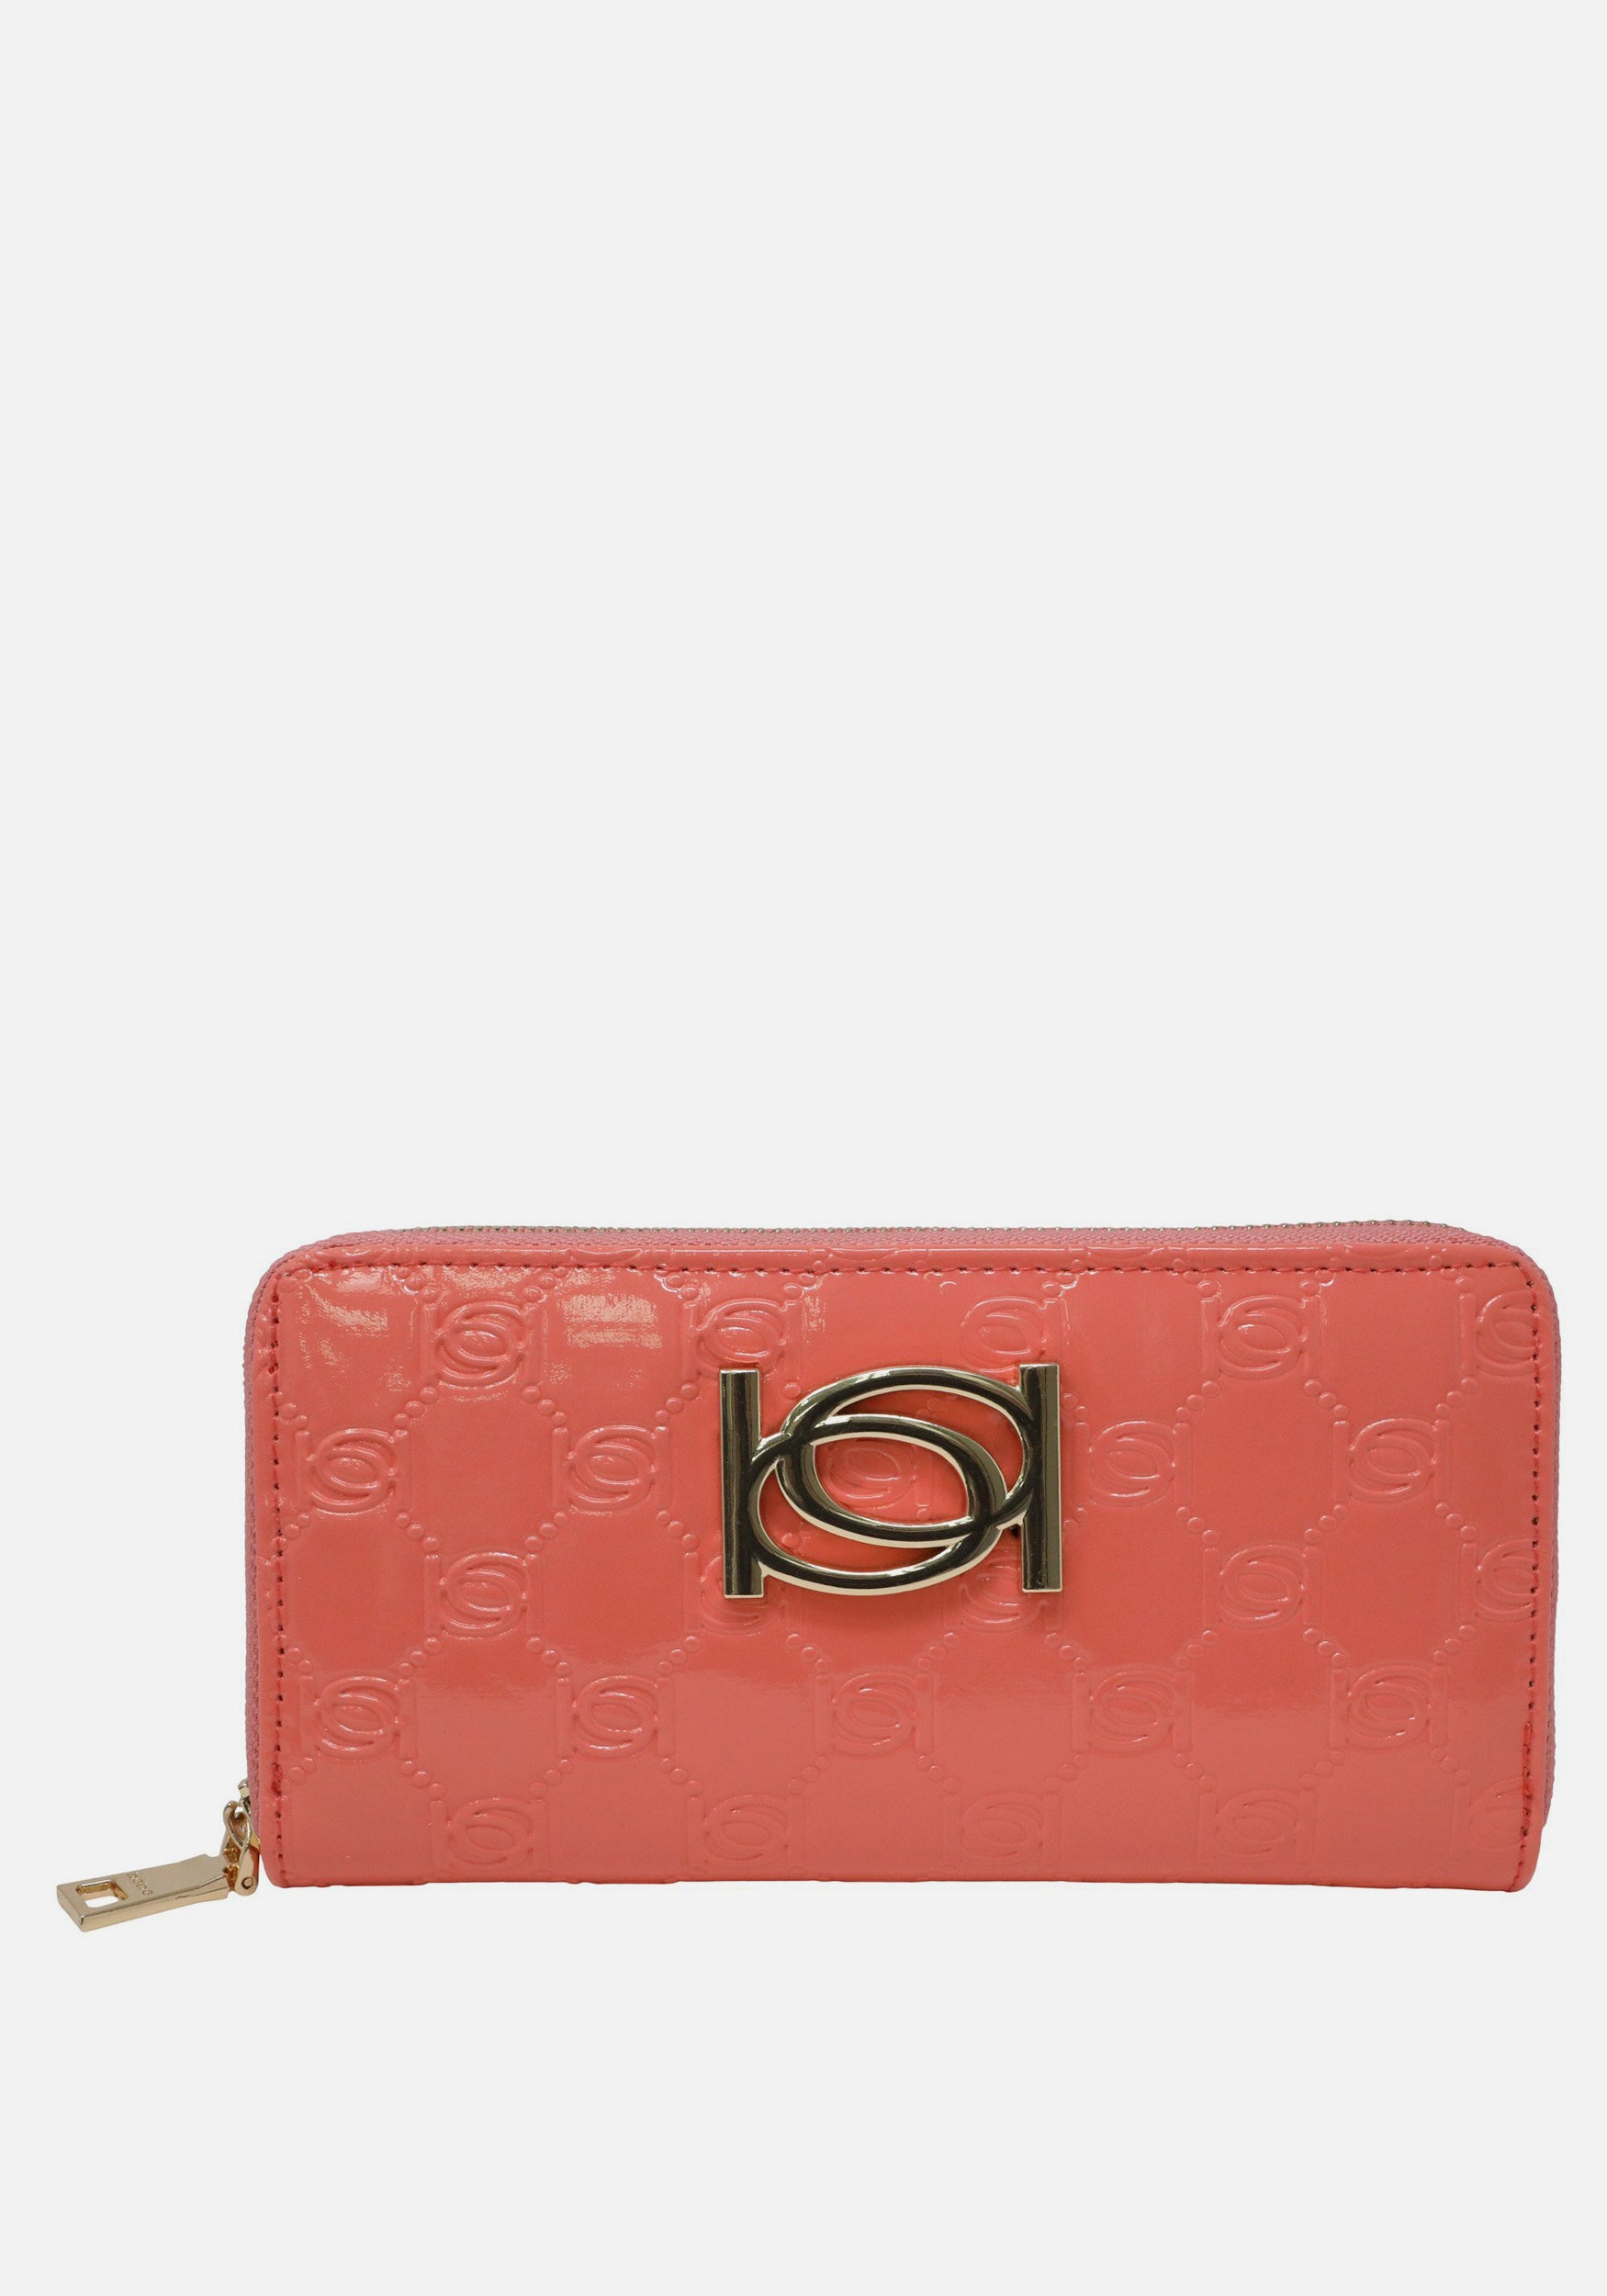 Bebe Women's Esme Patent Popped Monogram Wallet in Coral Polyester